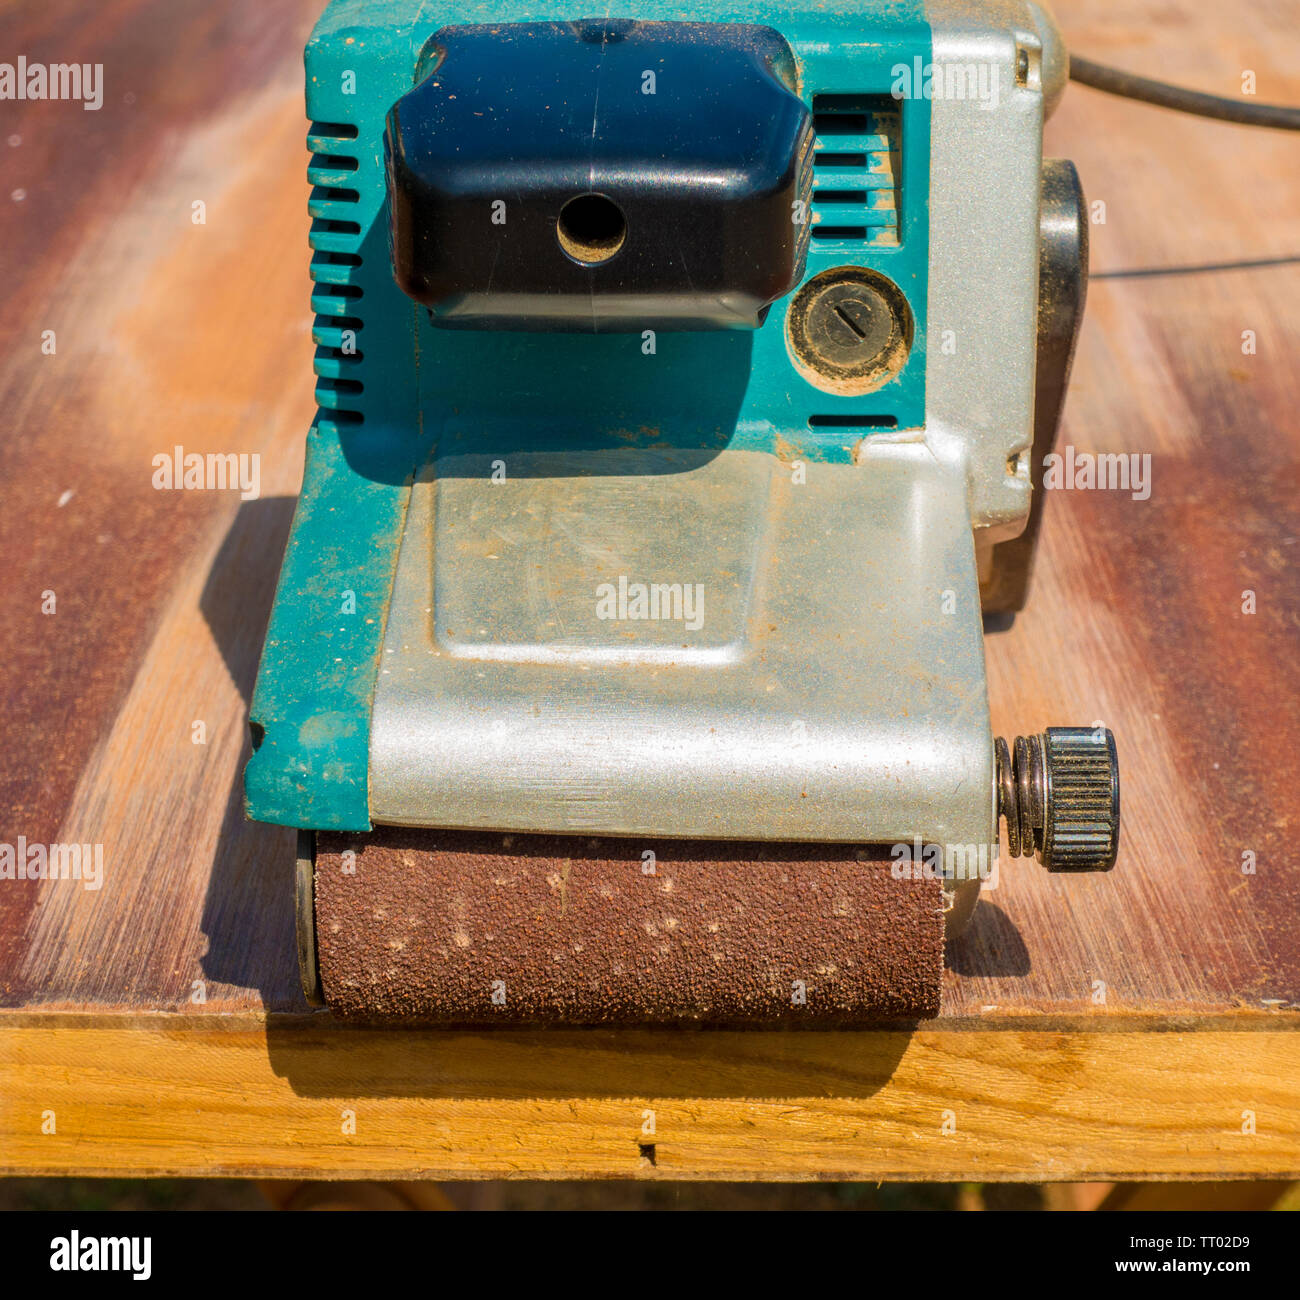 Heavy duty belt sander power tool, fitted with a coarse sanding belt, being used on an internal door, to remove the old varnish from the wood surface. - Stock Image